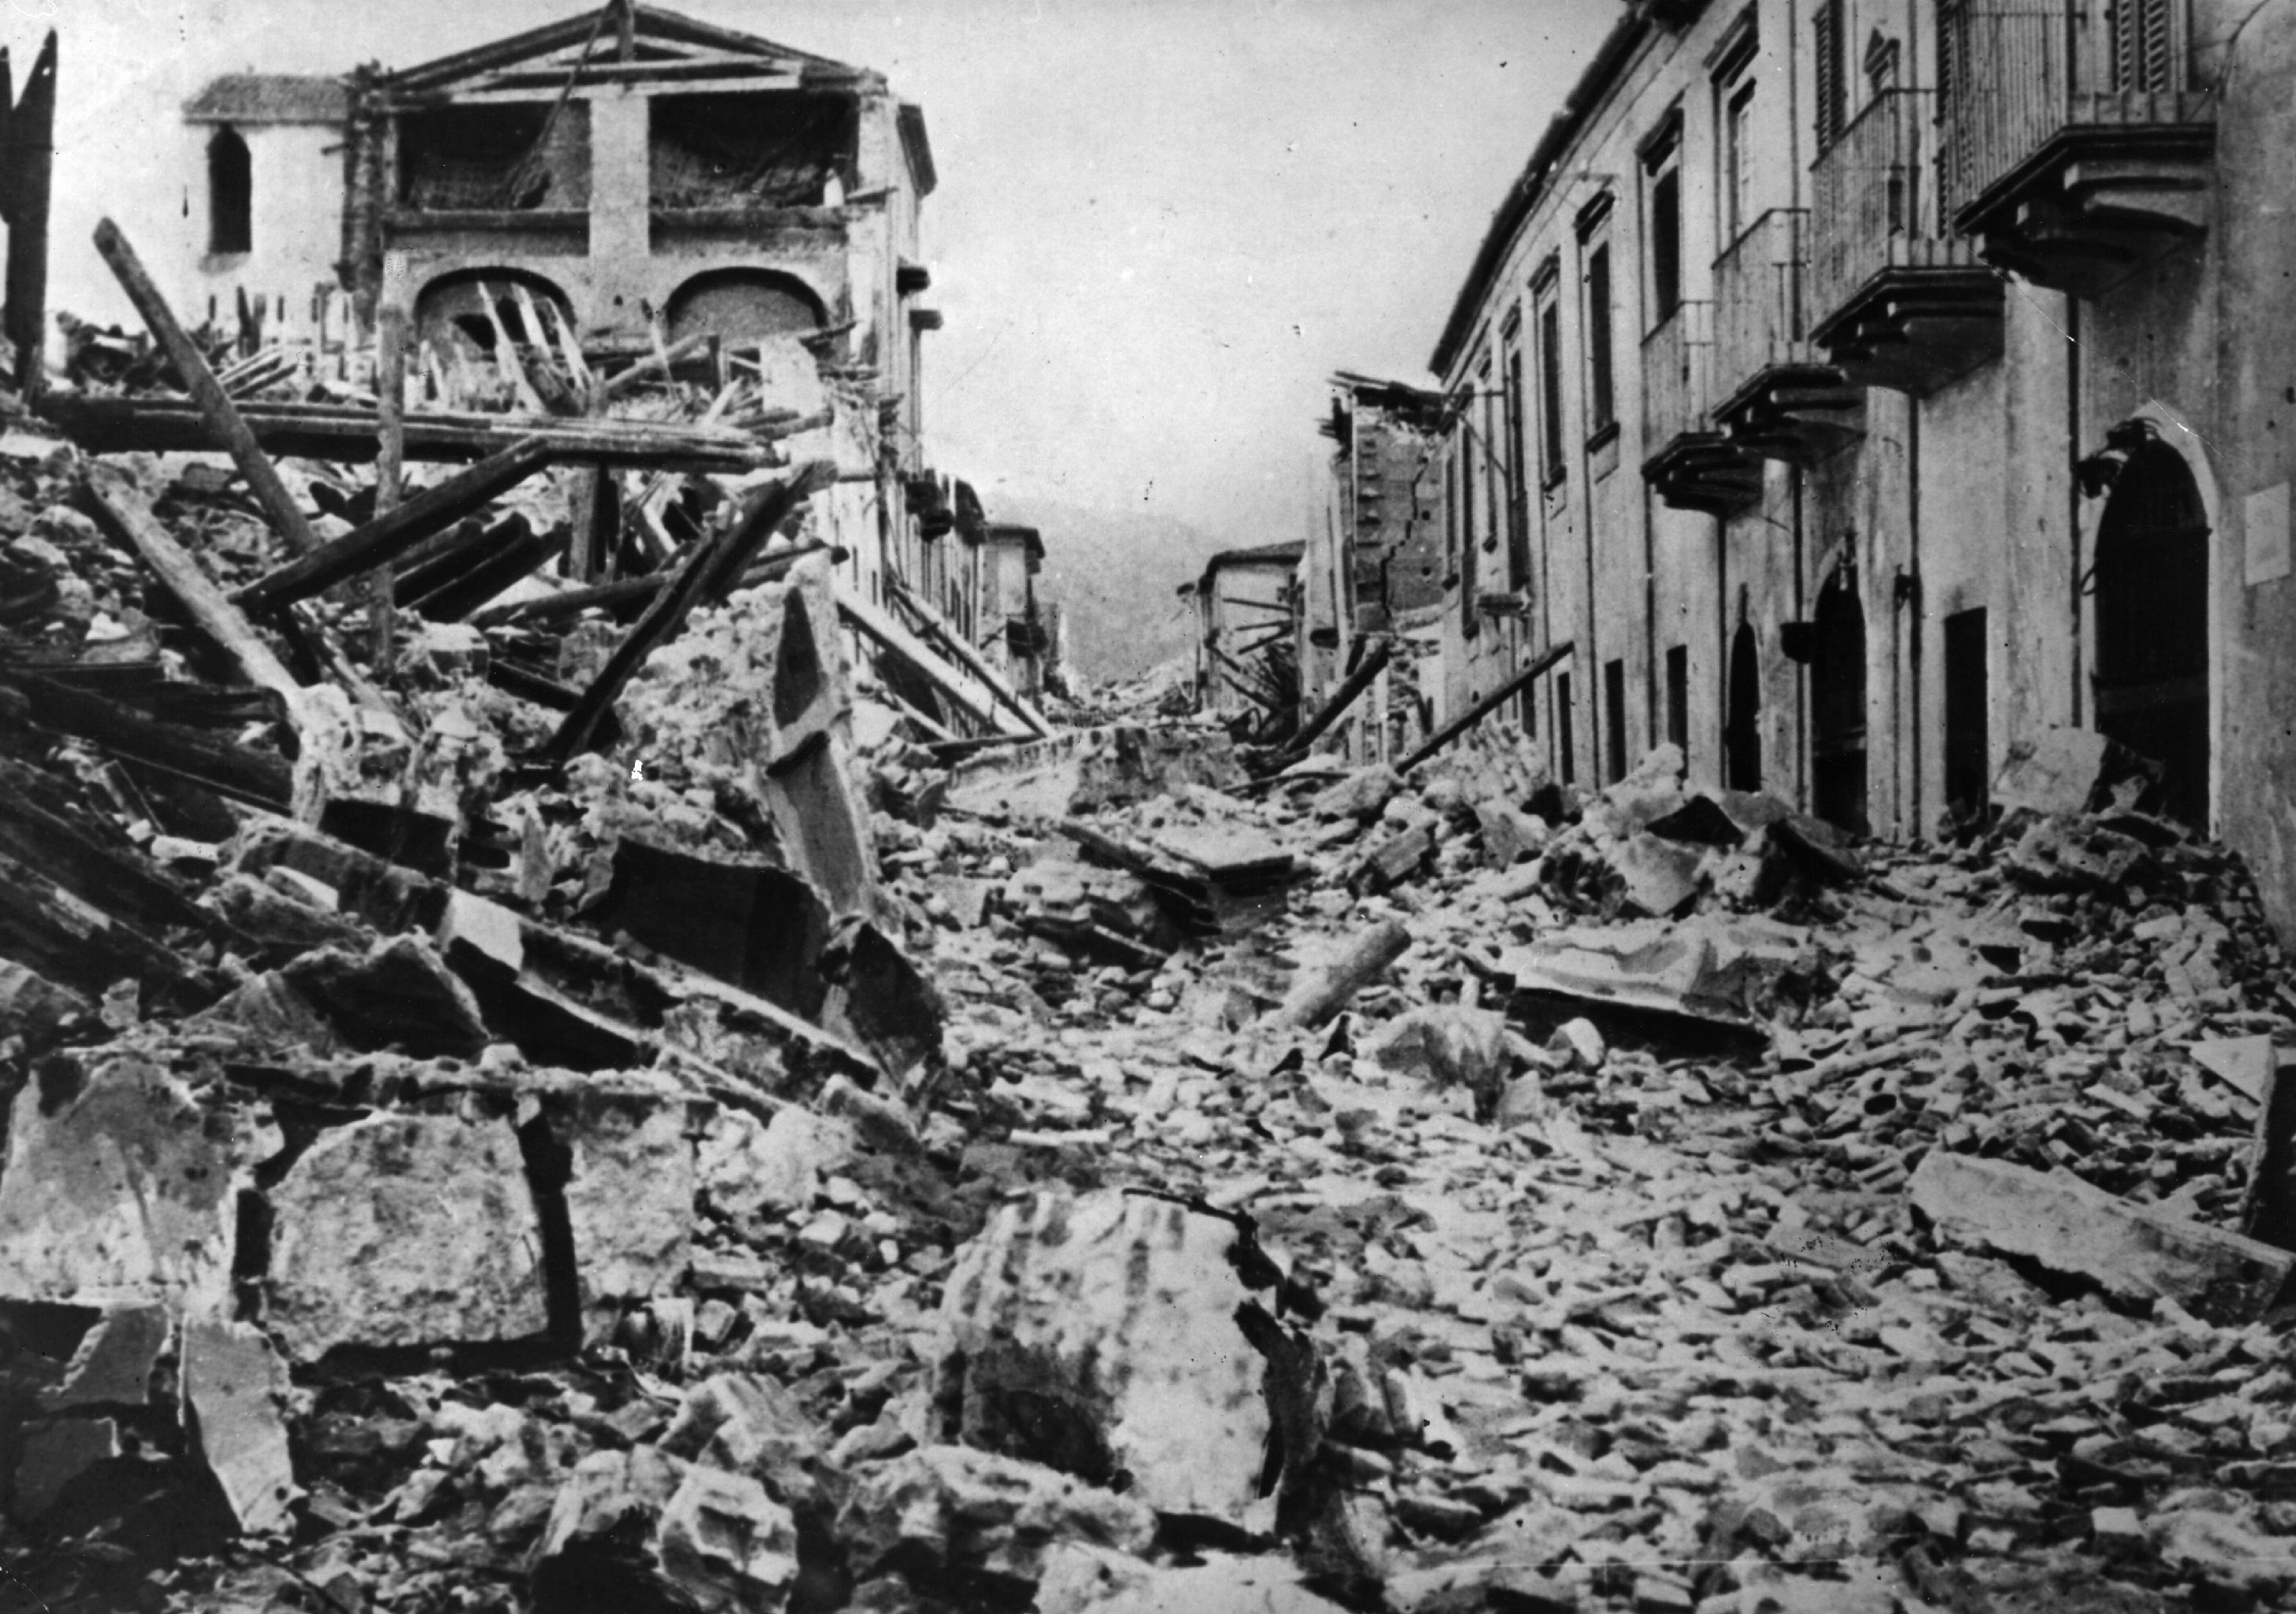 Aftermath of a tsunami in Messina in 1908